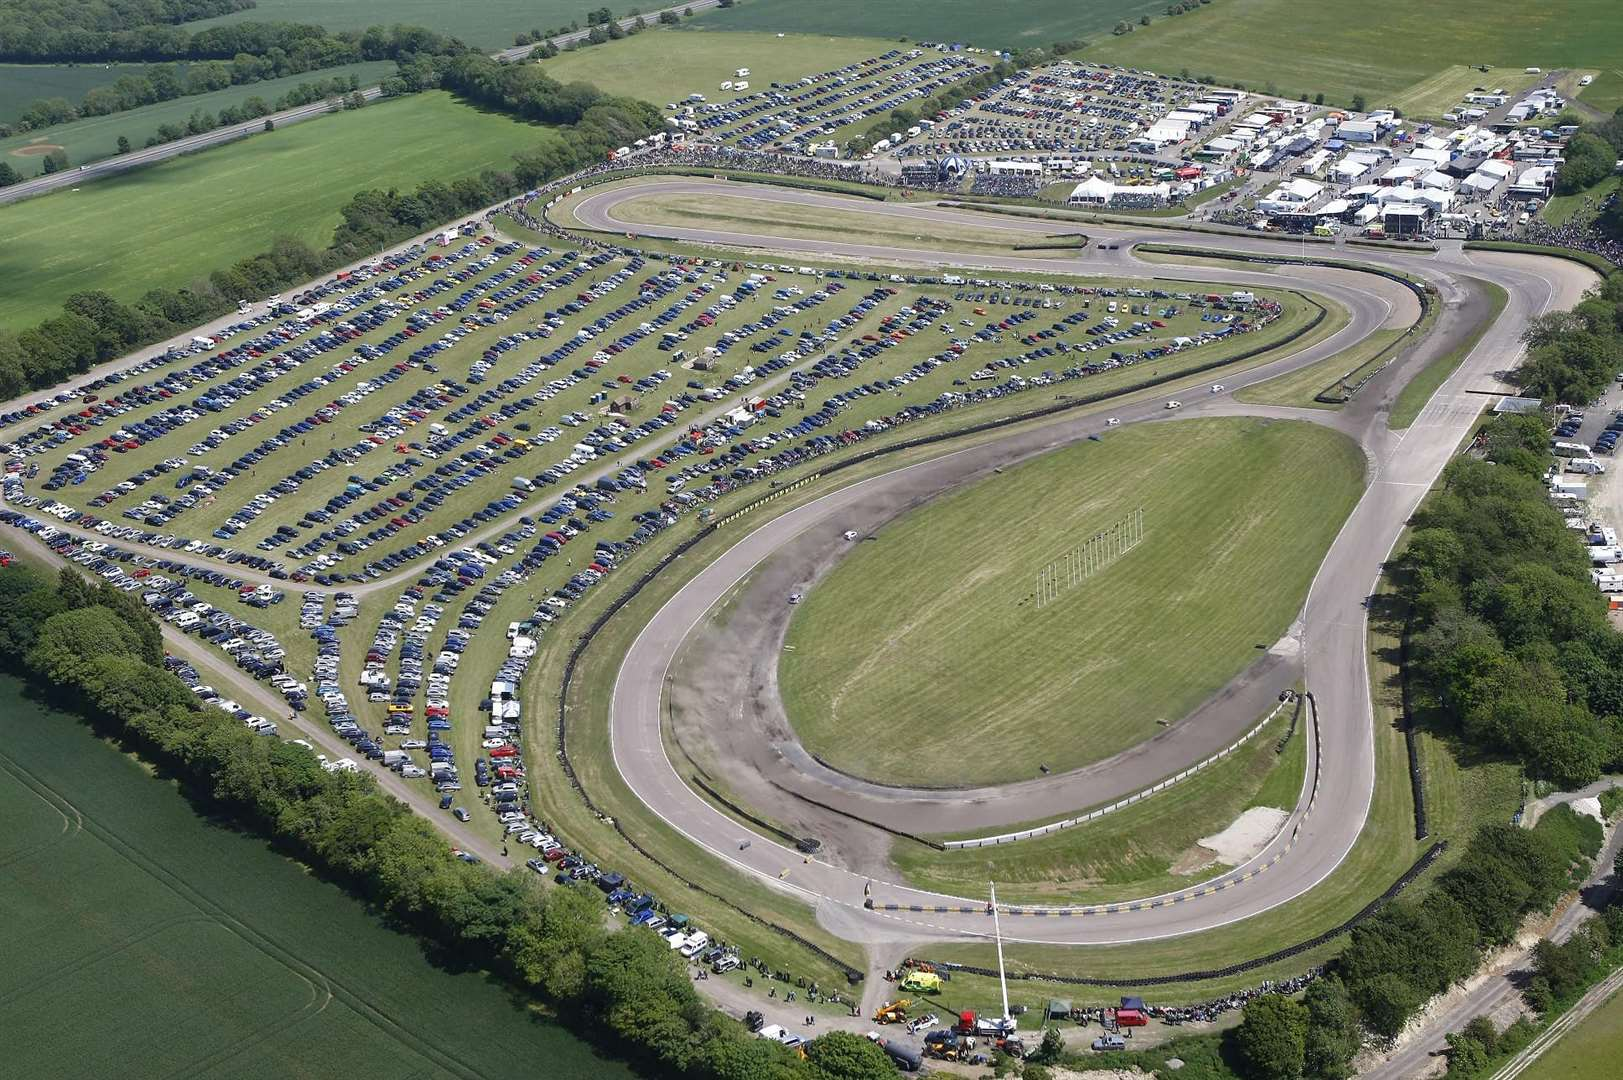 Major changes are planned for the circuit. Picture: Matt Bristow